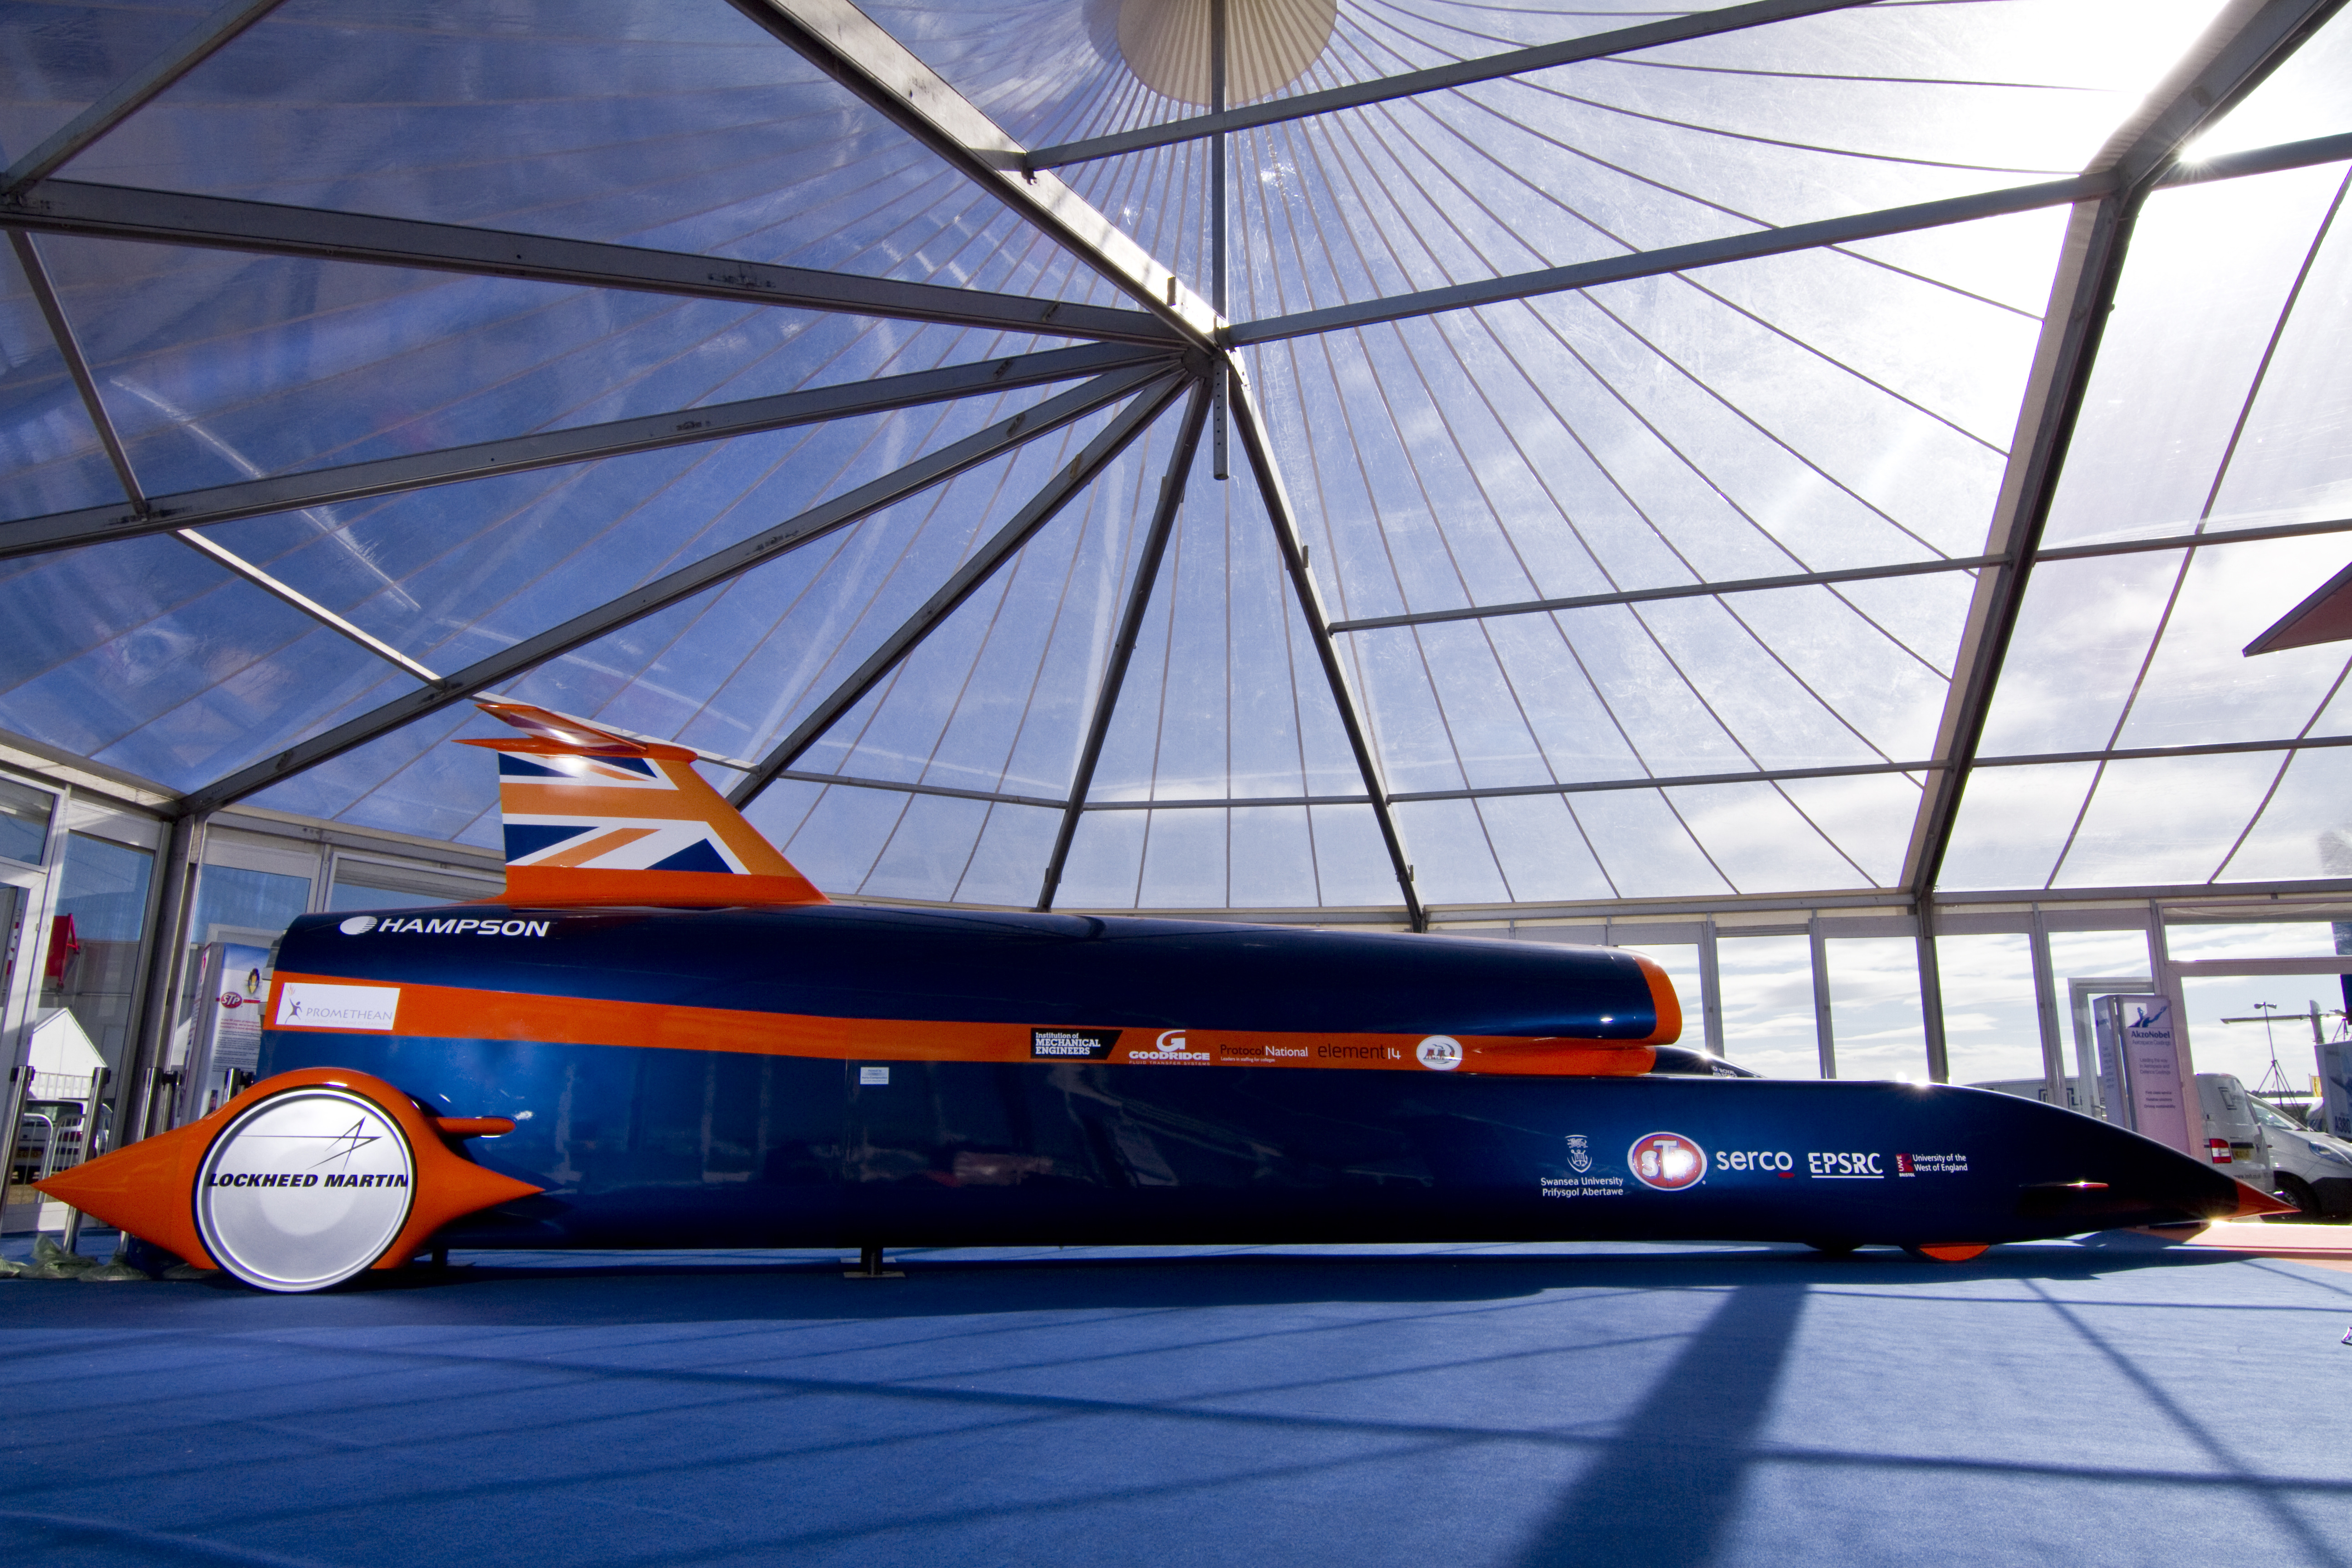 Side view of the Bloodhound SSC